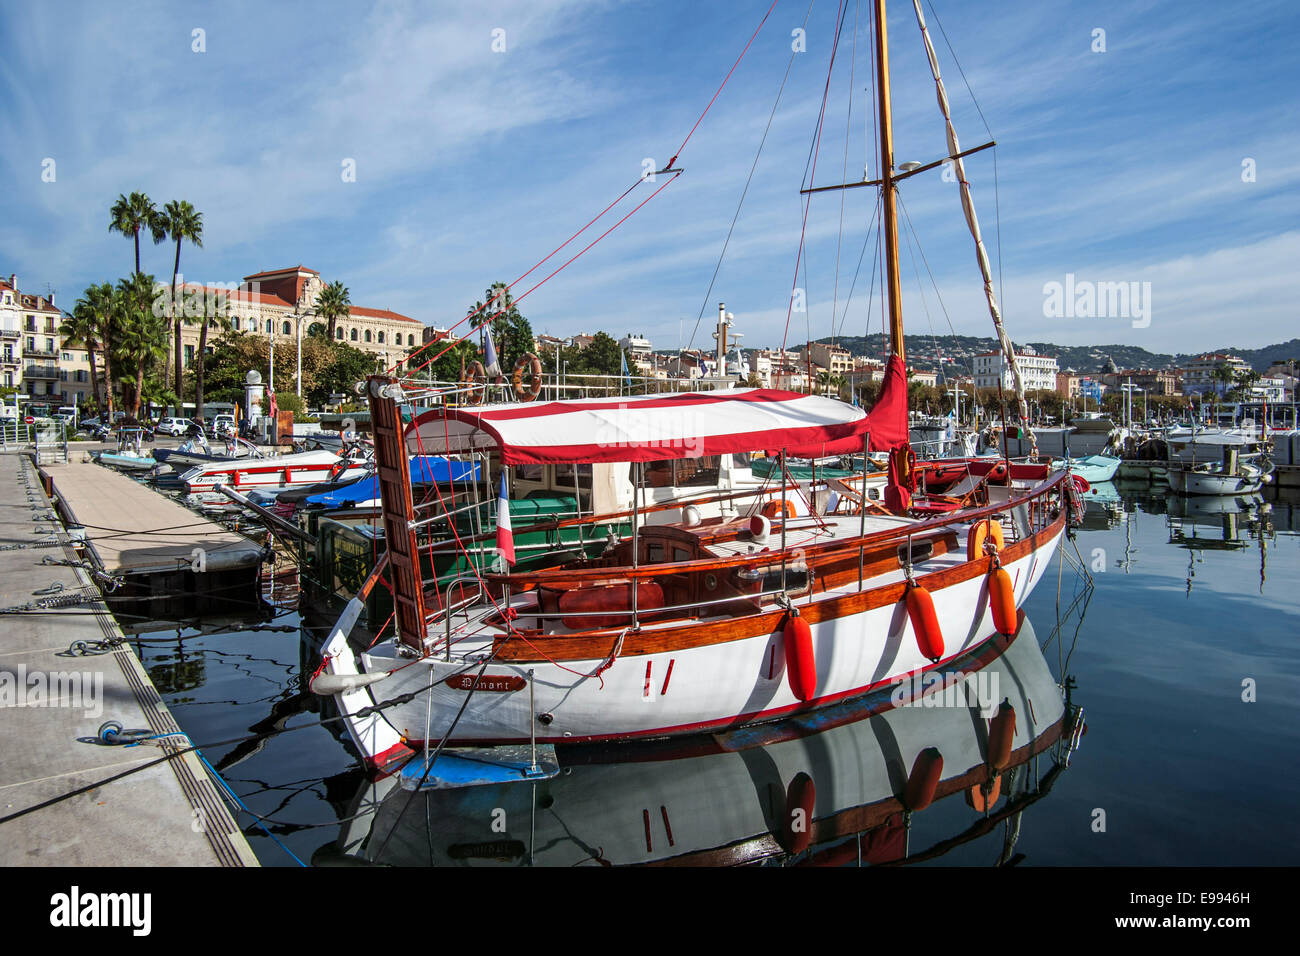 Sailing boats in the harbour at Cannes, French Riviera, Côte d'Azur, Alpes-Maritimes, France - Stock Image